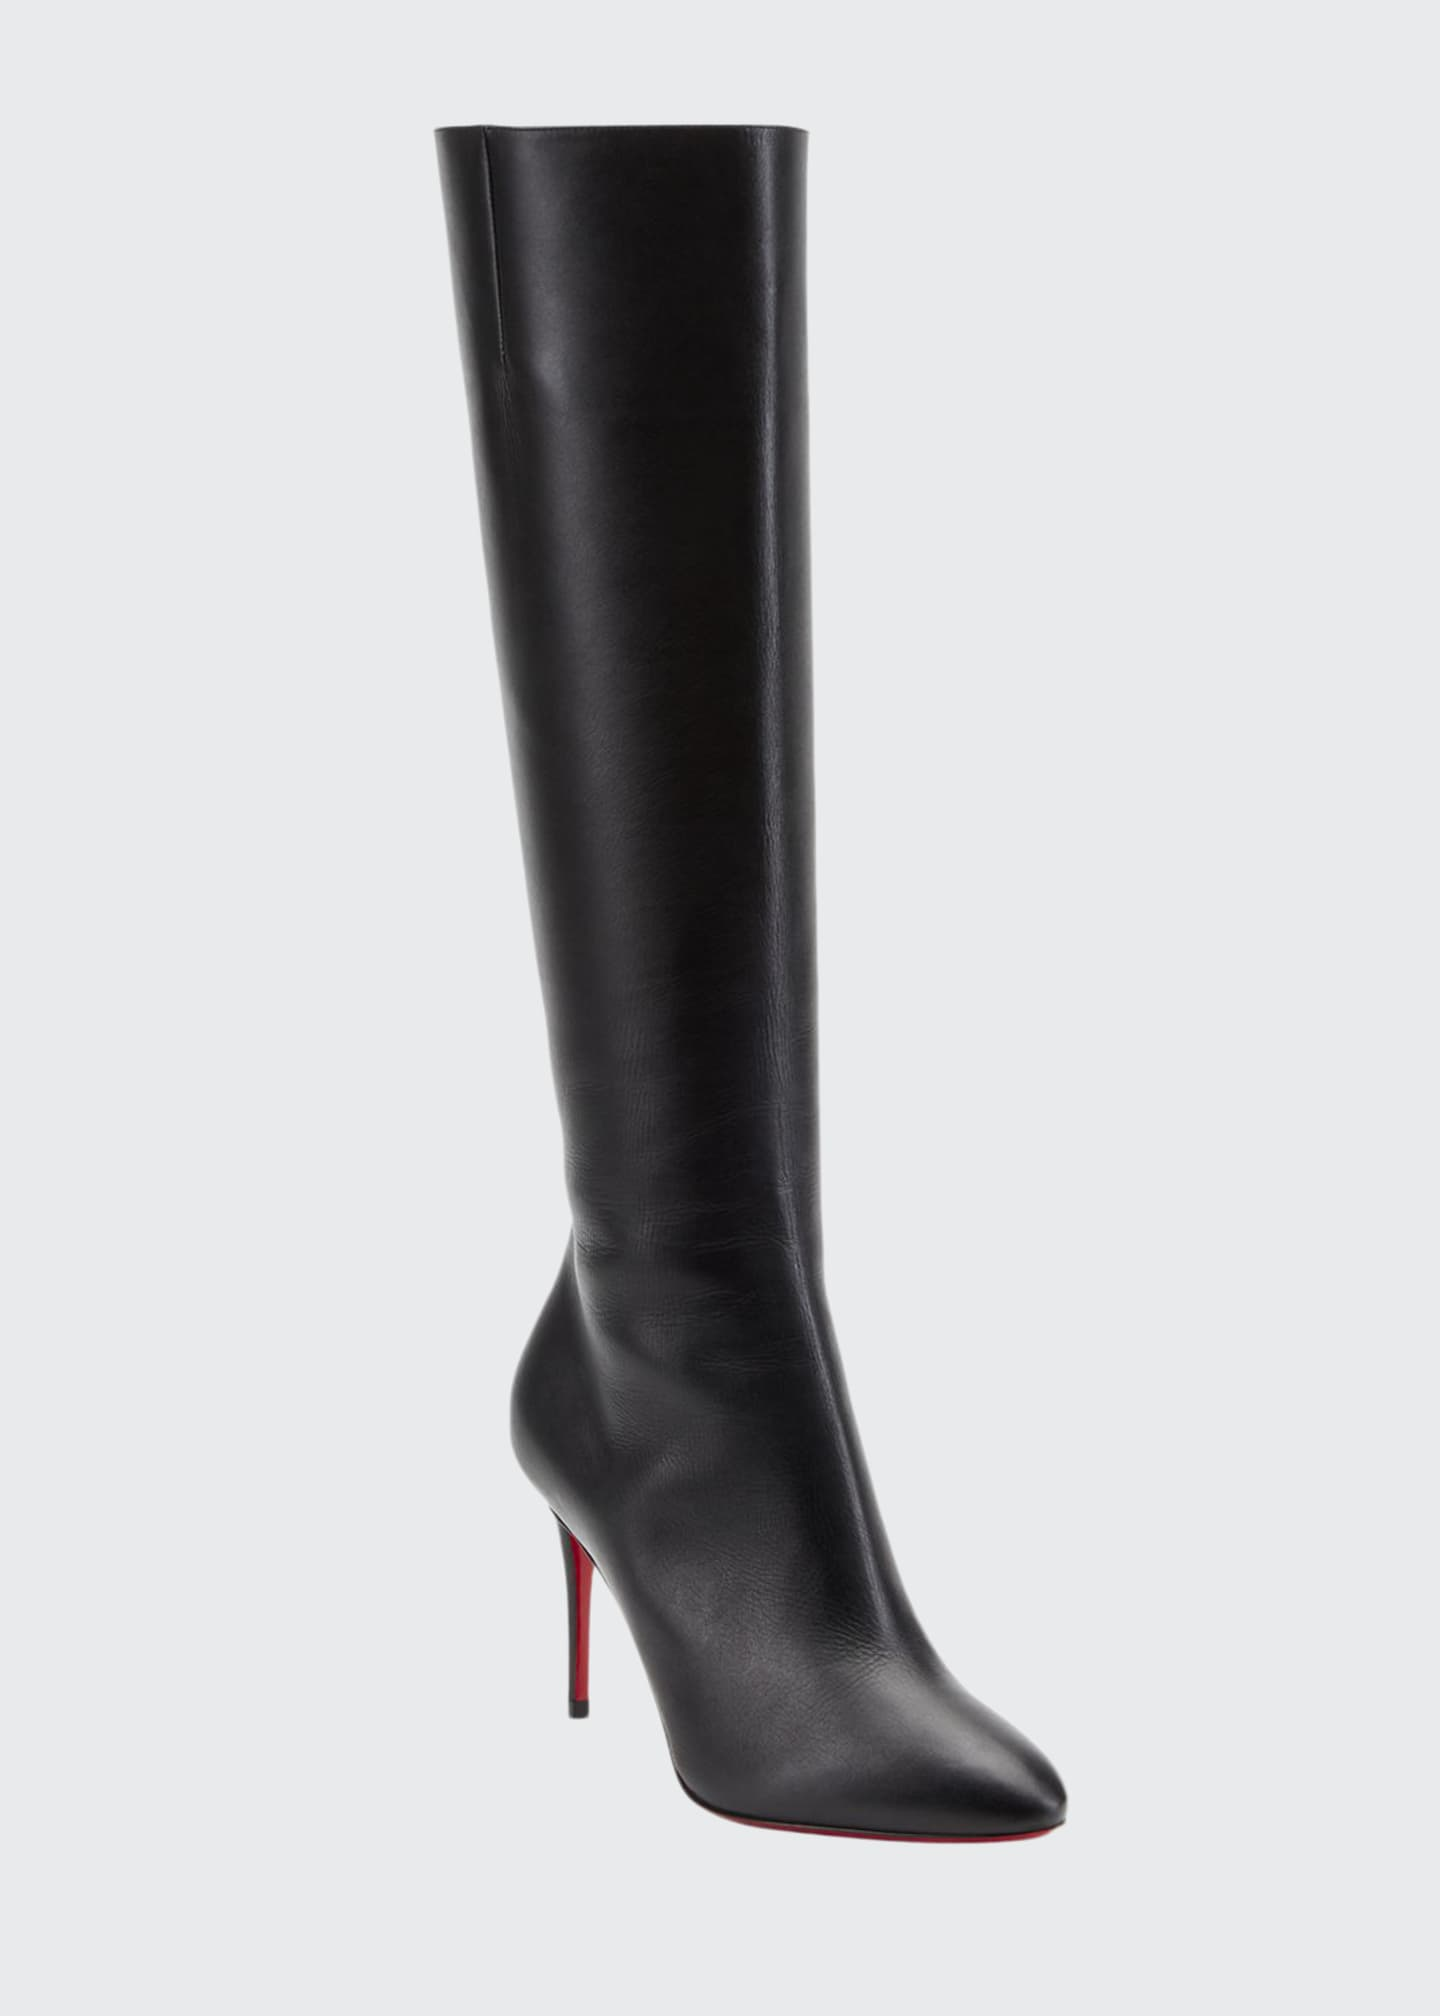 Image 1 of 2: Eloise Botta Red Sole Boots